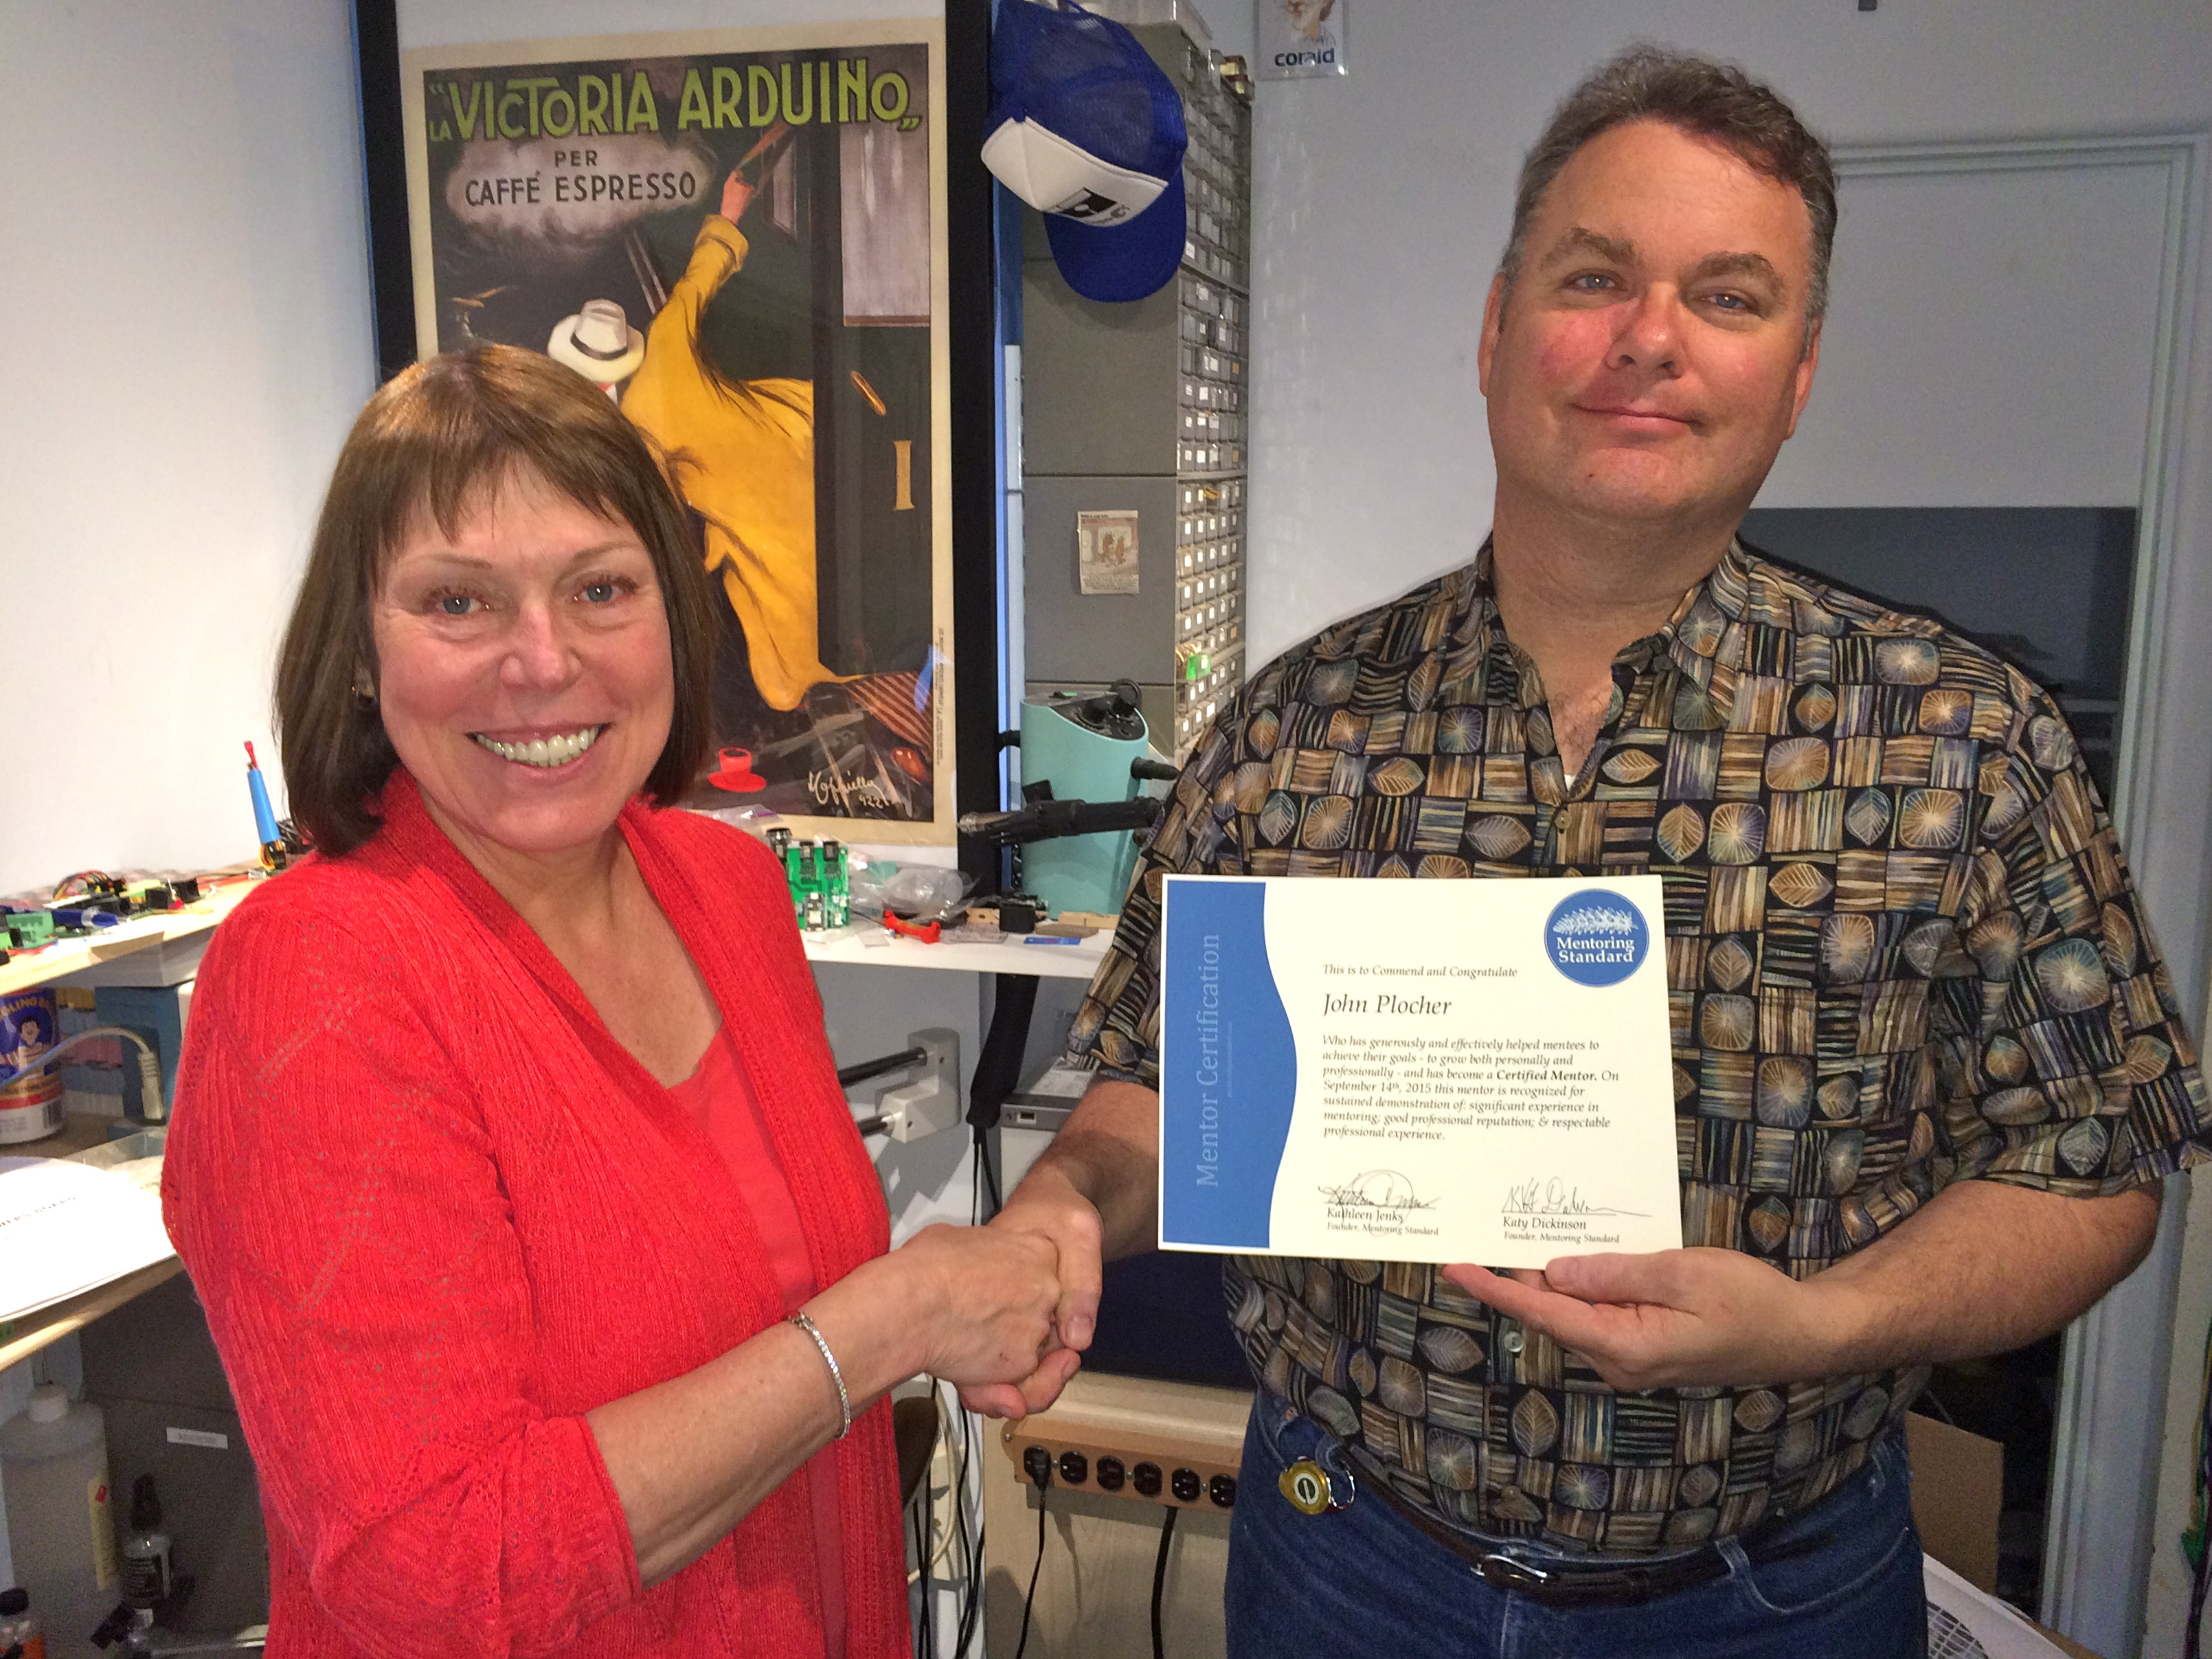 John Plocher received his Mentor Certificate from Kathy Jenks, September 2015